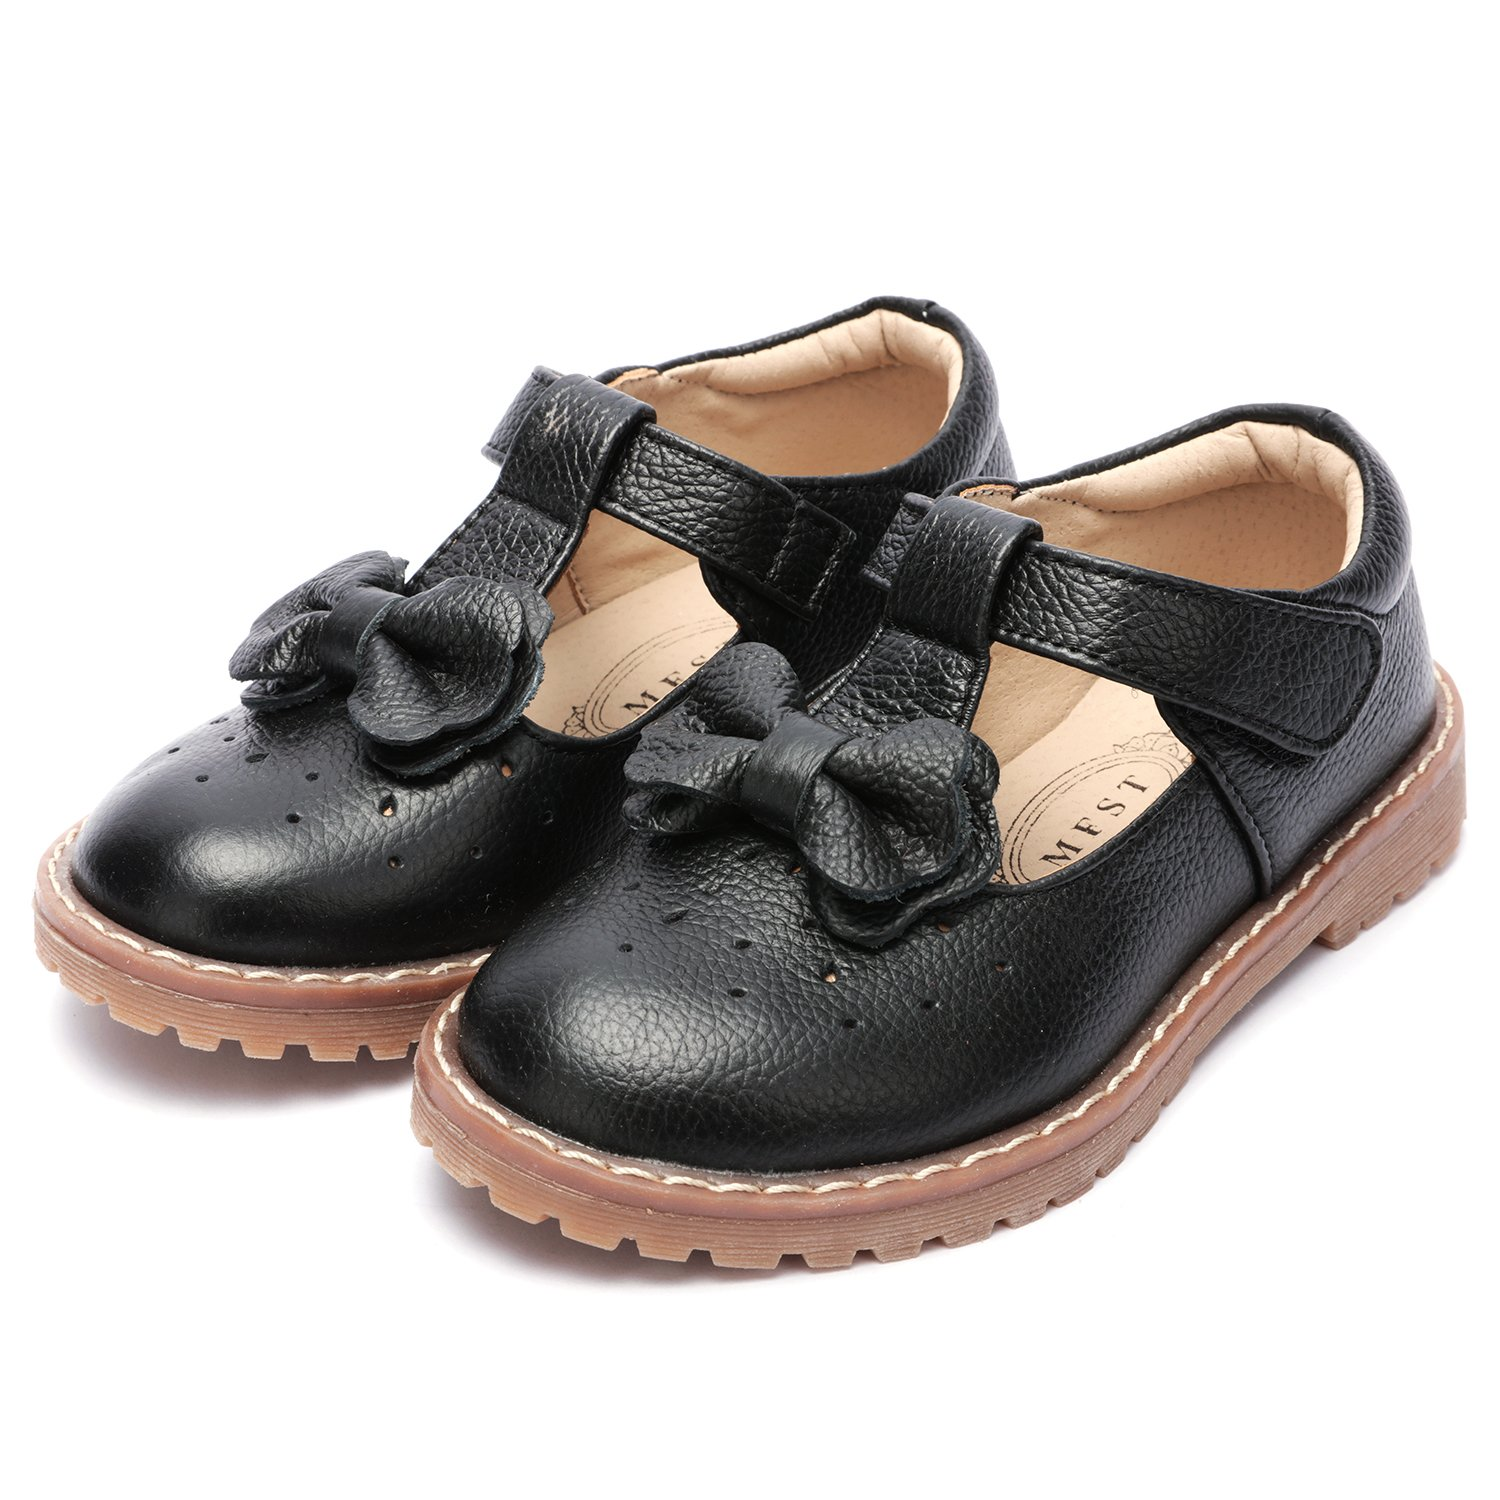 UBELLA Kids Toddler Girl's Retro T-Bar Princess Dress Shoes Leather Strap Mary Jane Flat Oxford Shoes by UBELLA (Image #5)